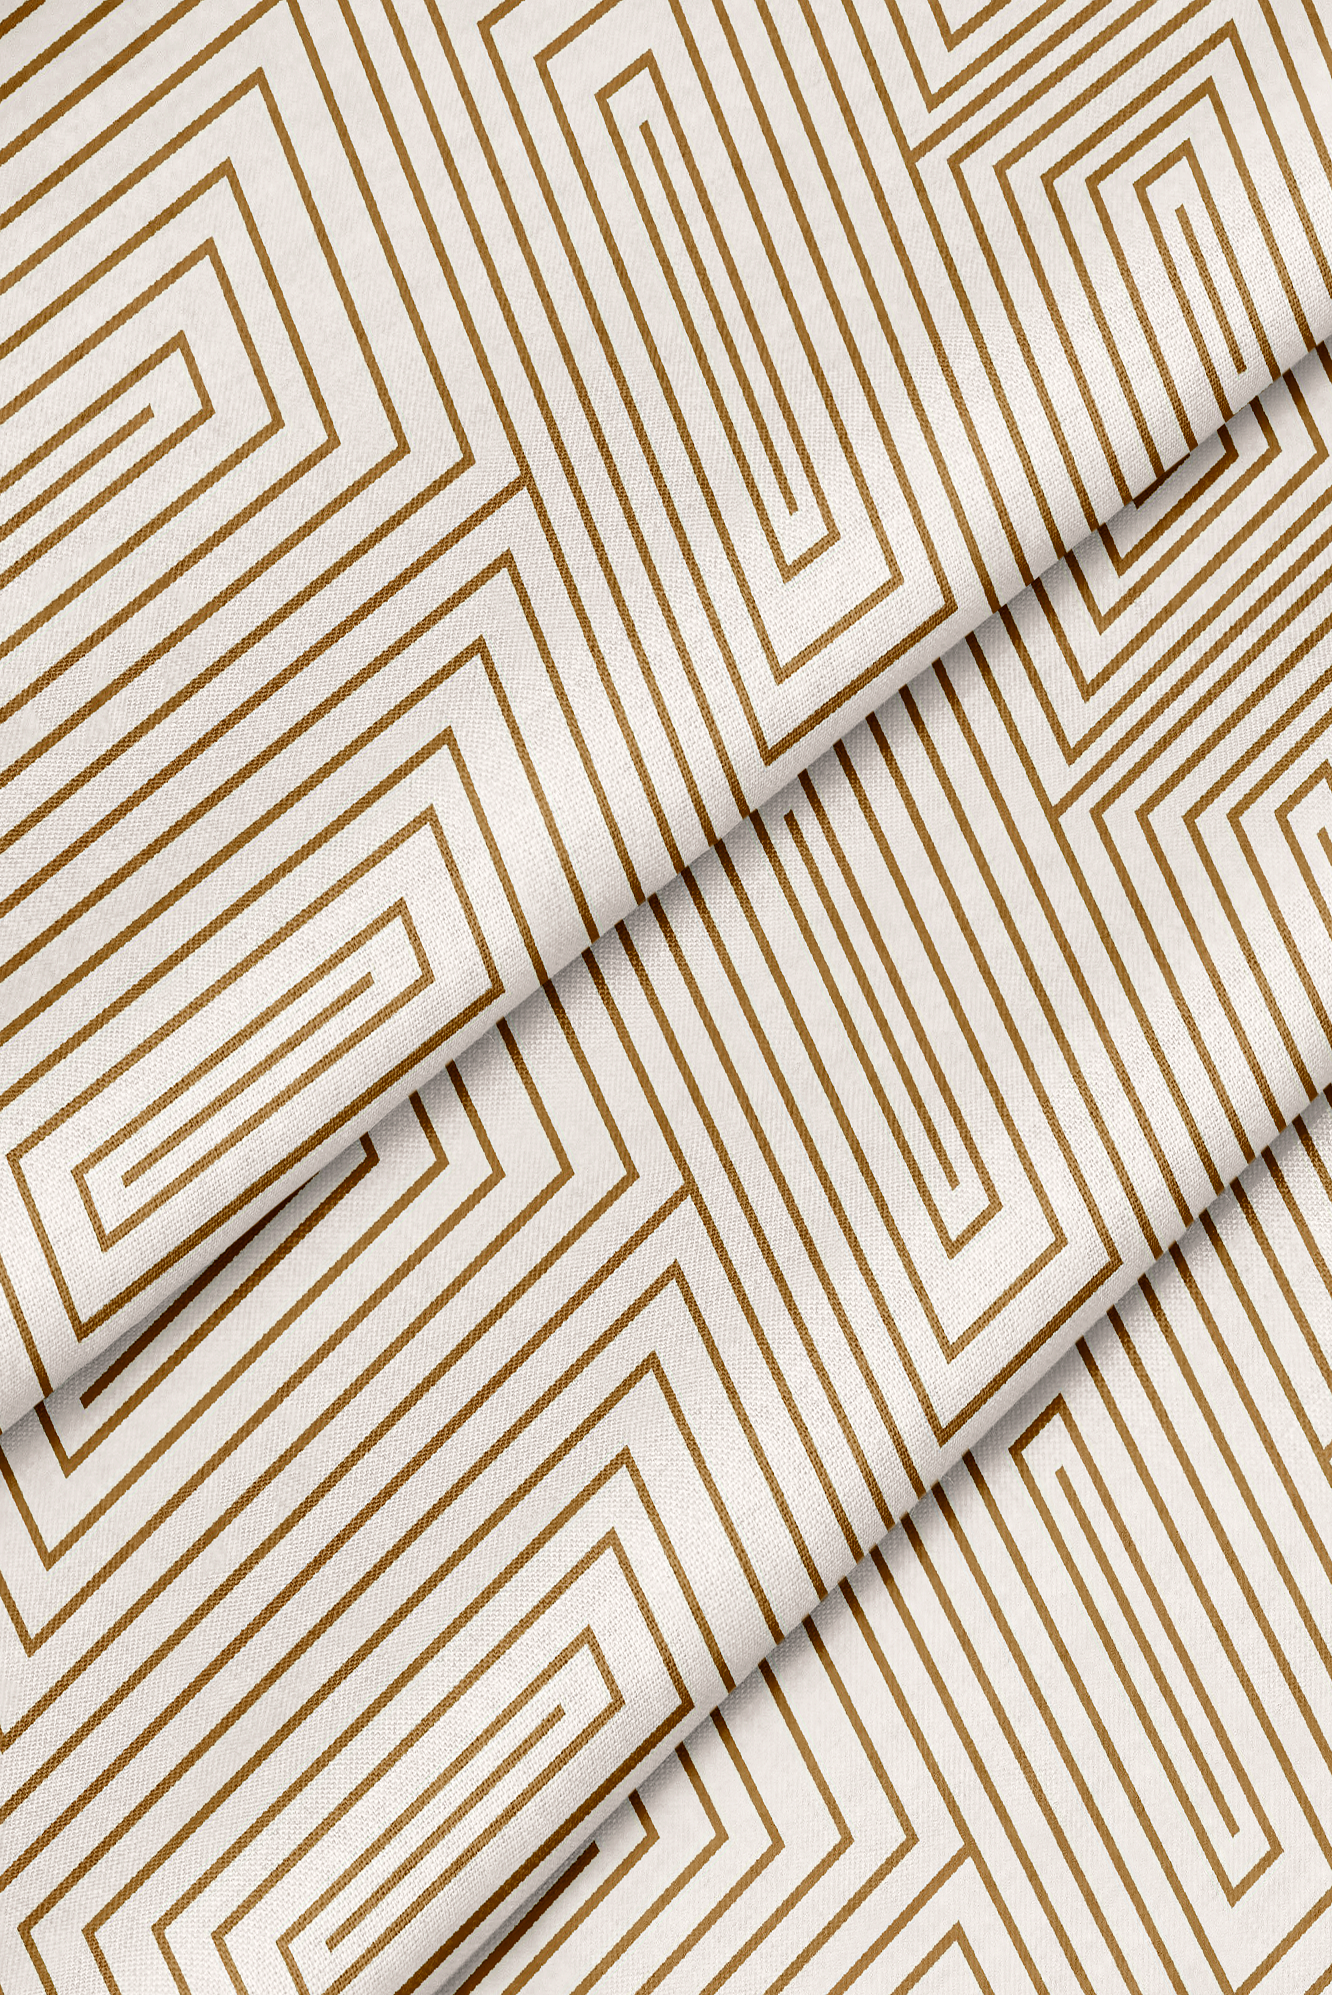 Nia Cream Forbes + Masters - Fabric by the Yard